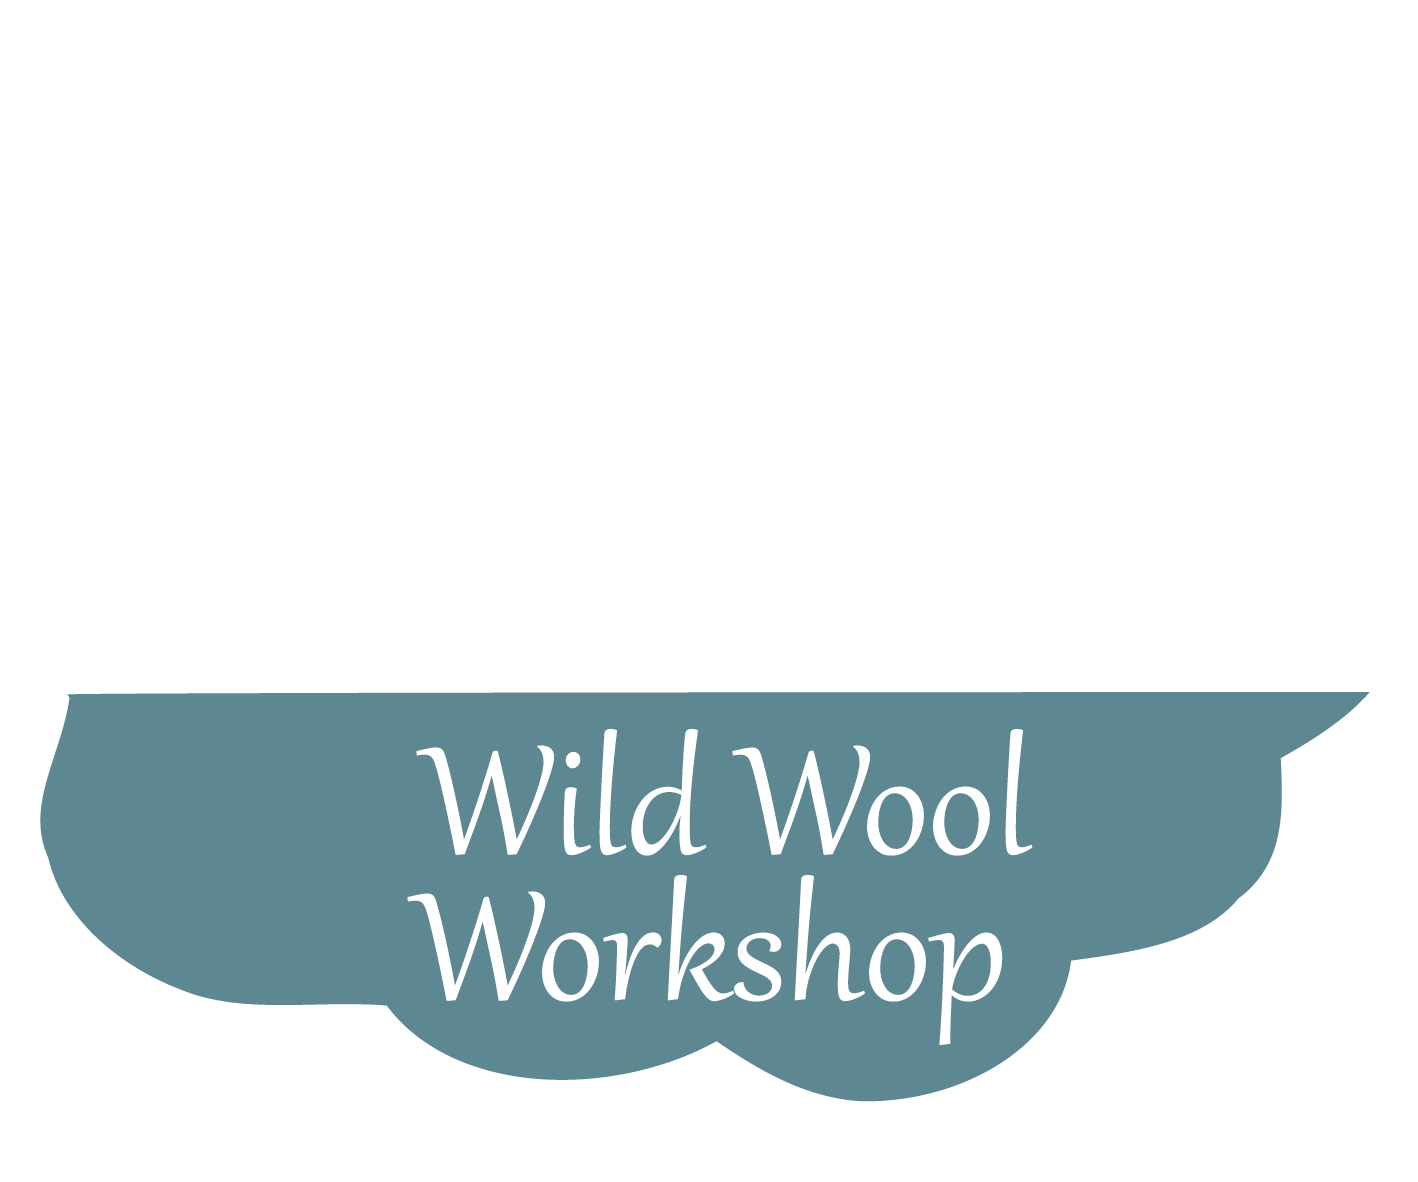 Wild Wool Workshop